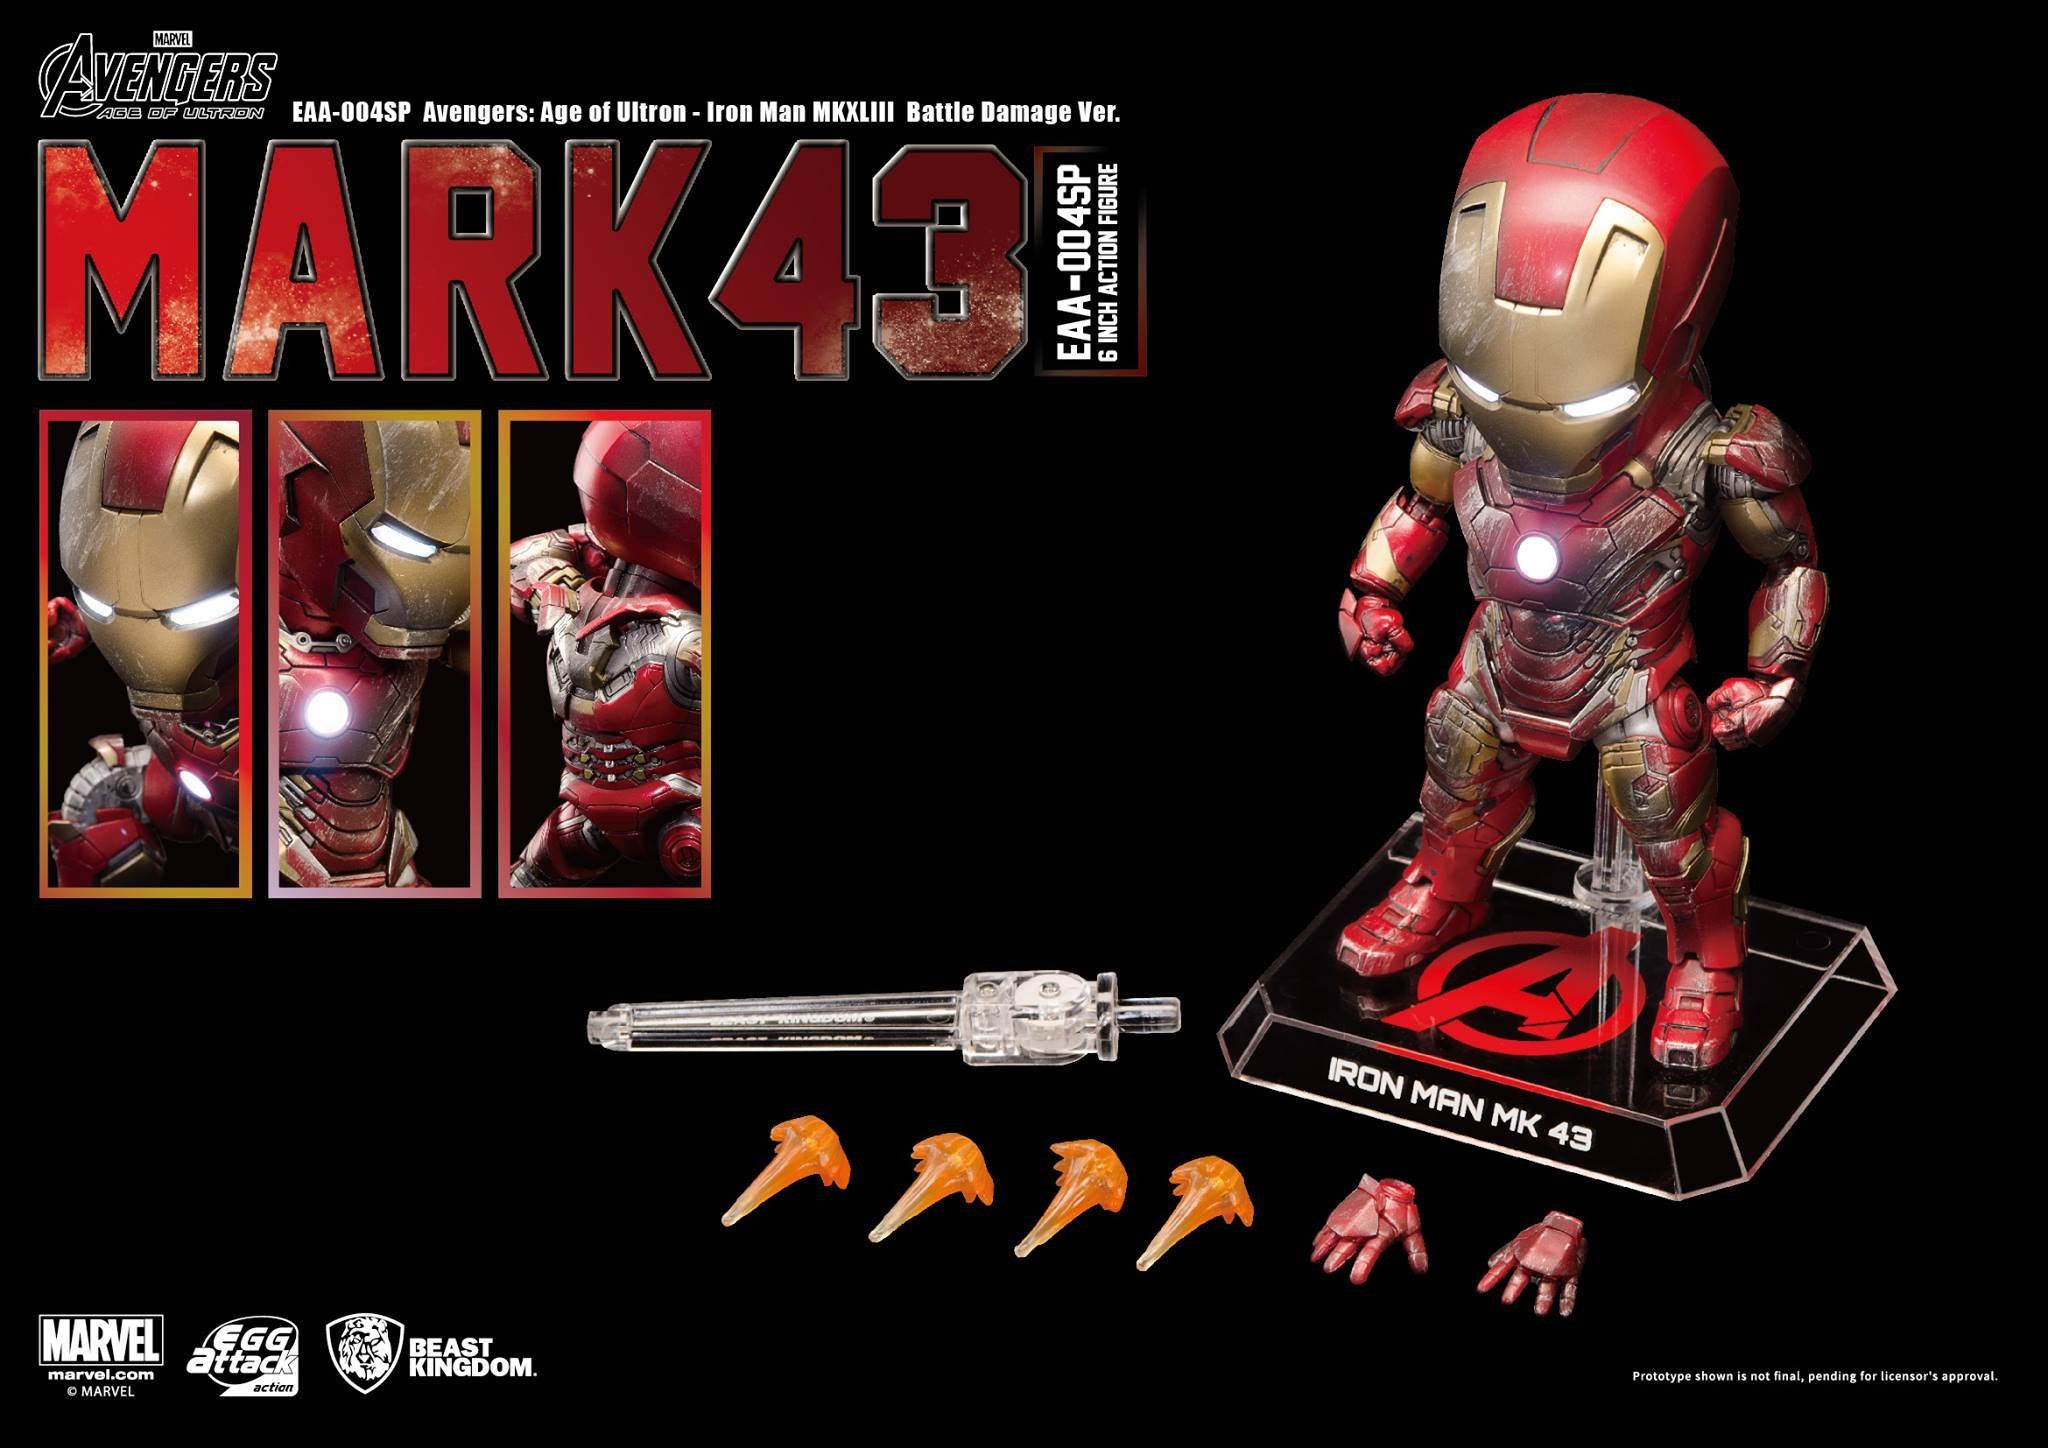 Egg Attack Action - EAA-004SP - Avengers: Age of Ultron - Iron Man Mark 43 (XLIII) (Battle Damage Edition) - Marvelous Toys - 5